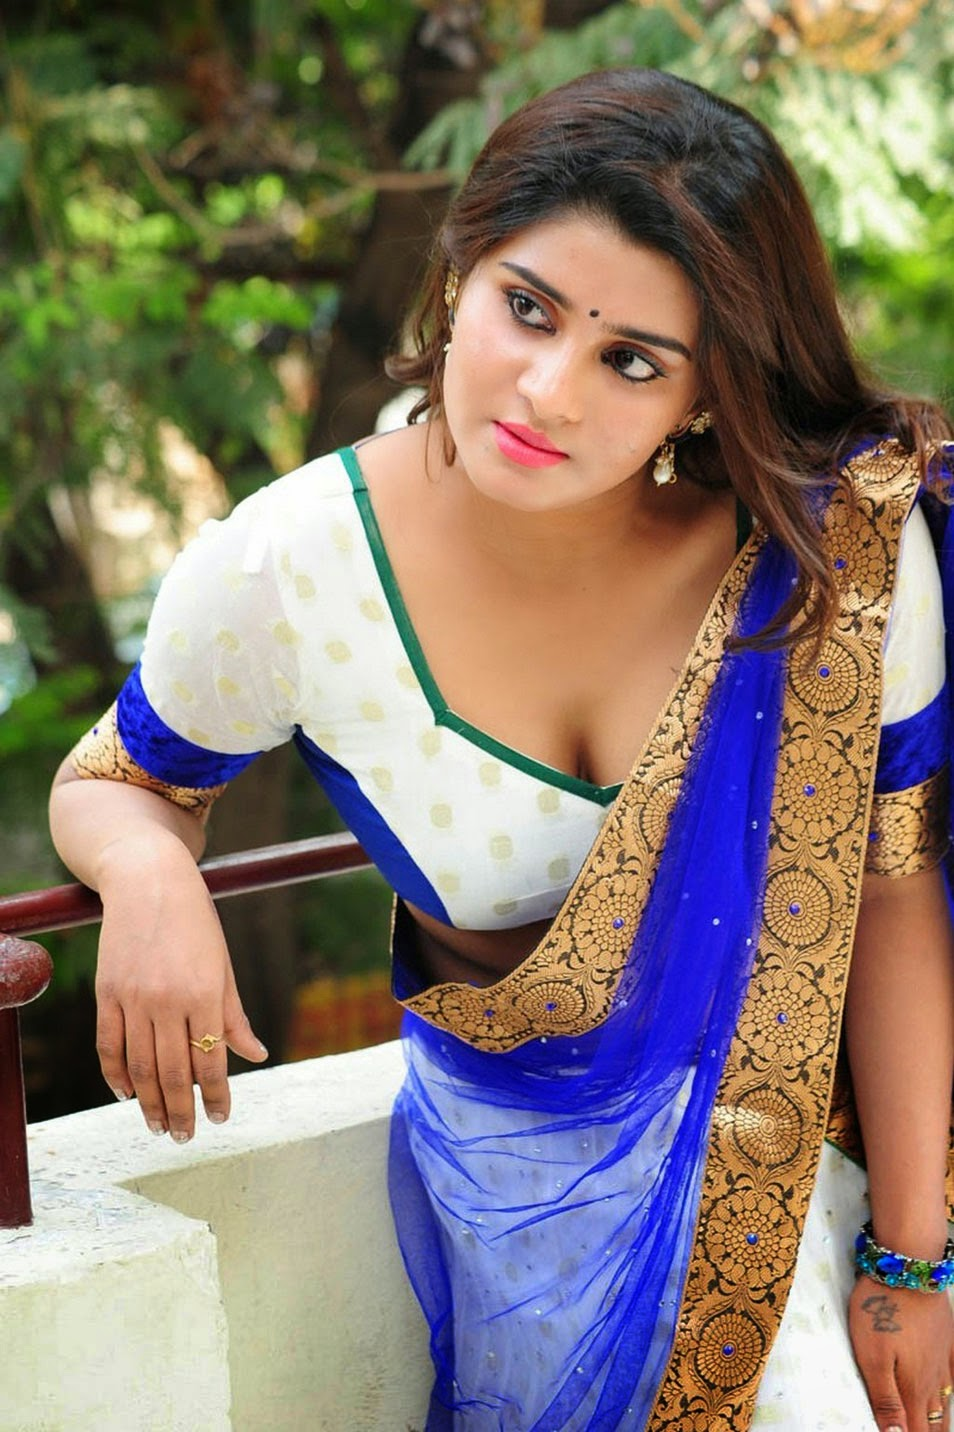 Hot Actress  Bd Actresscom  Bangladeshi Hot Actress-3841